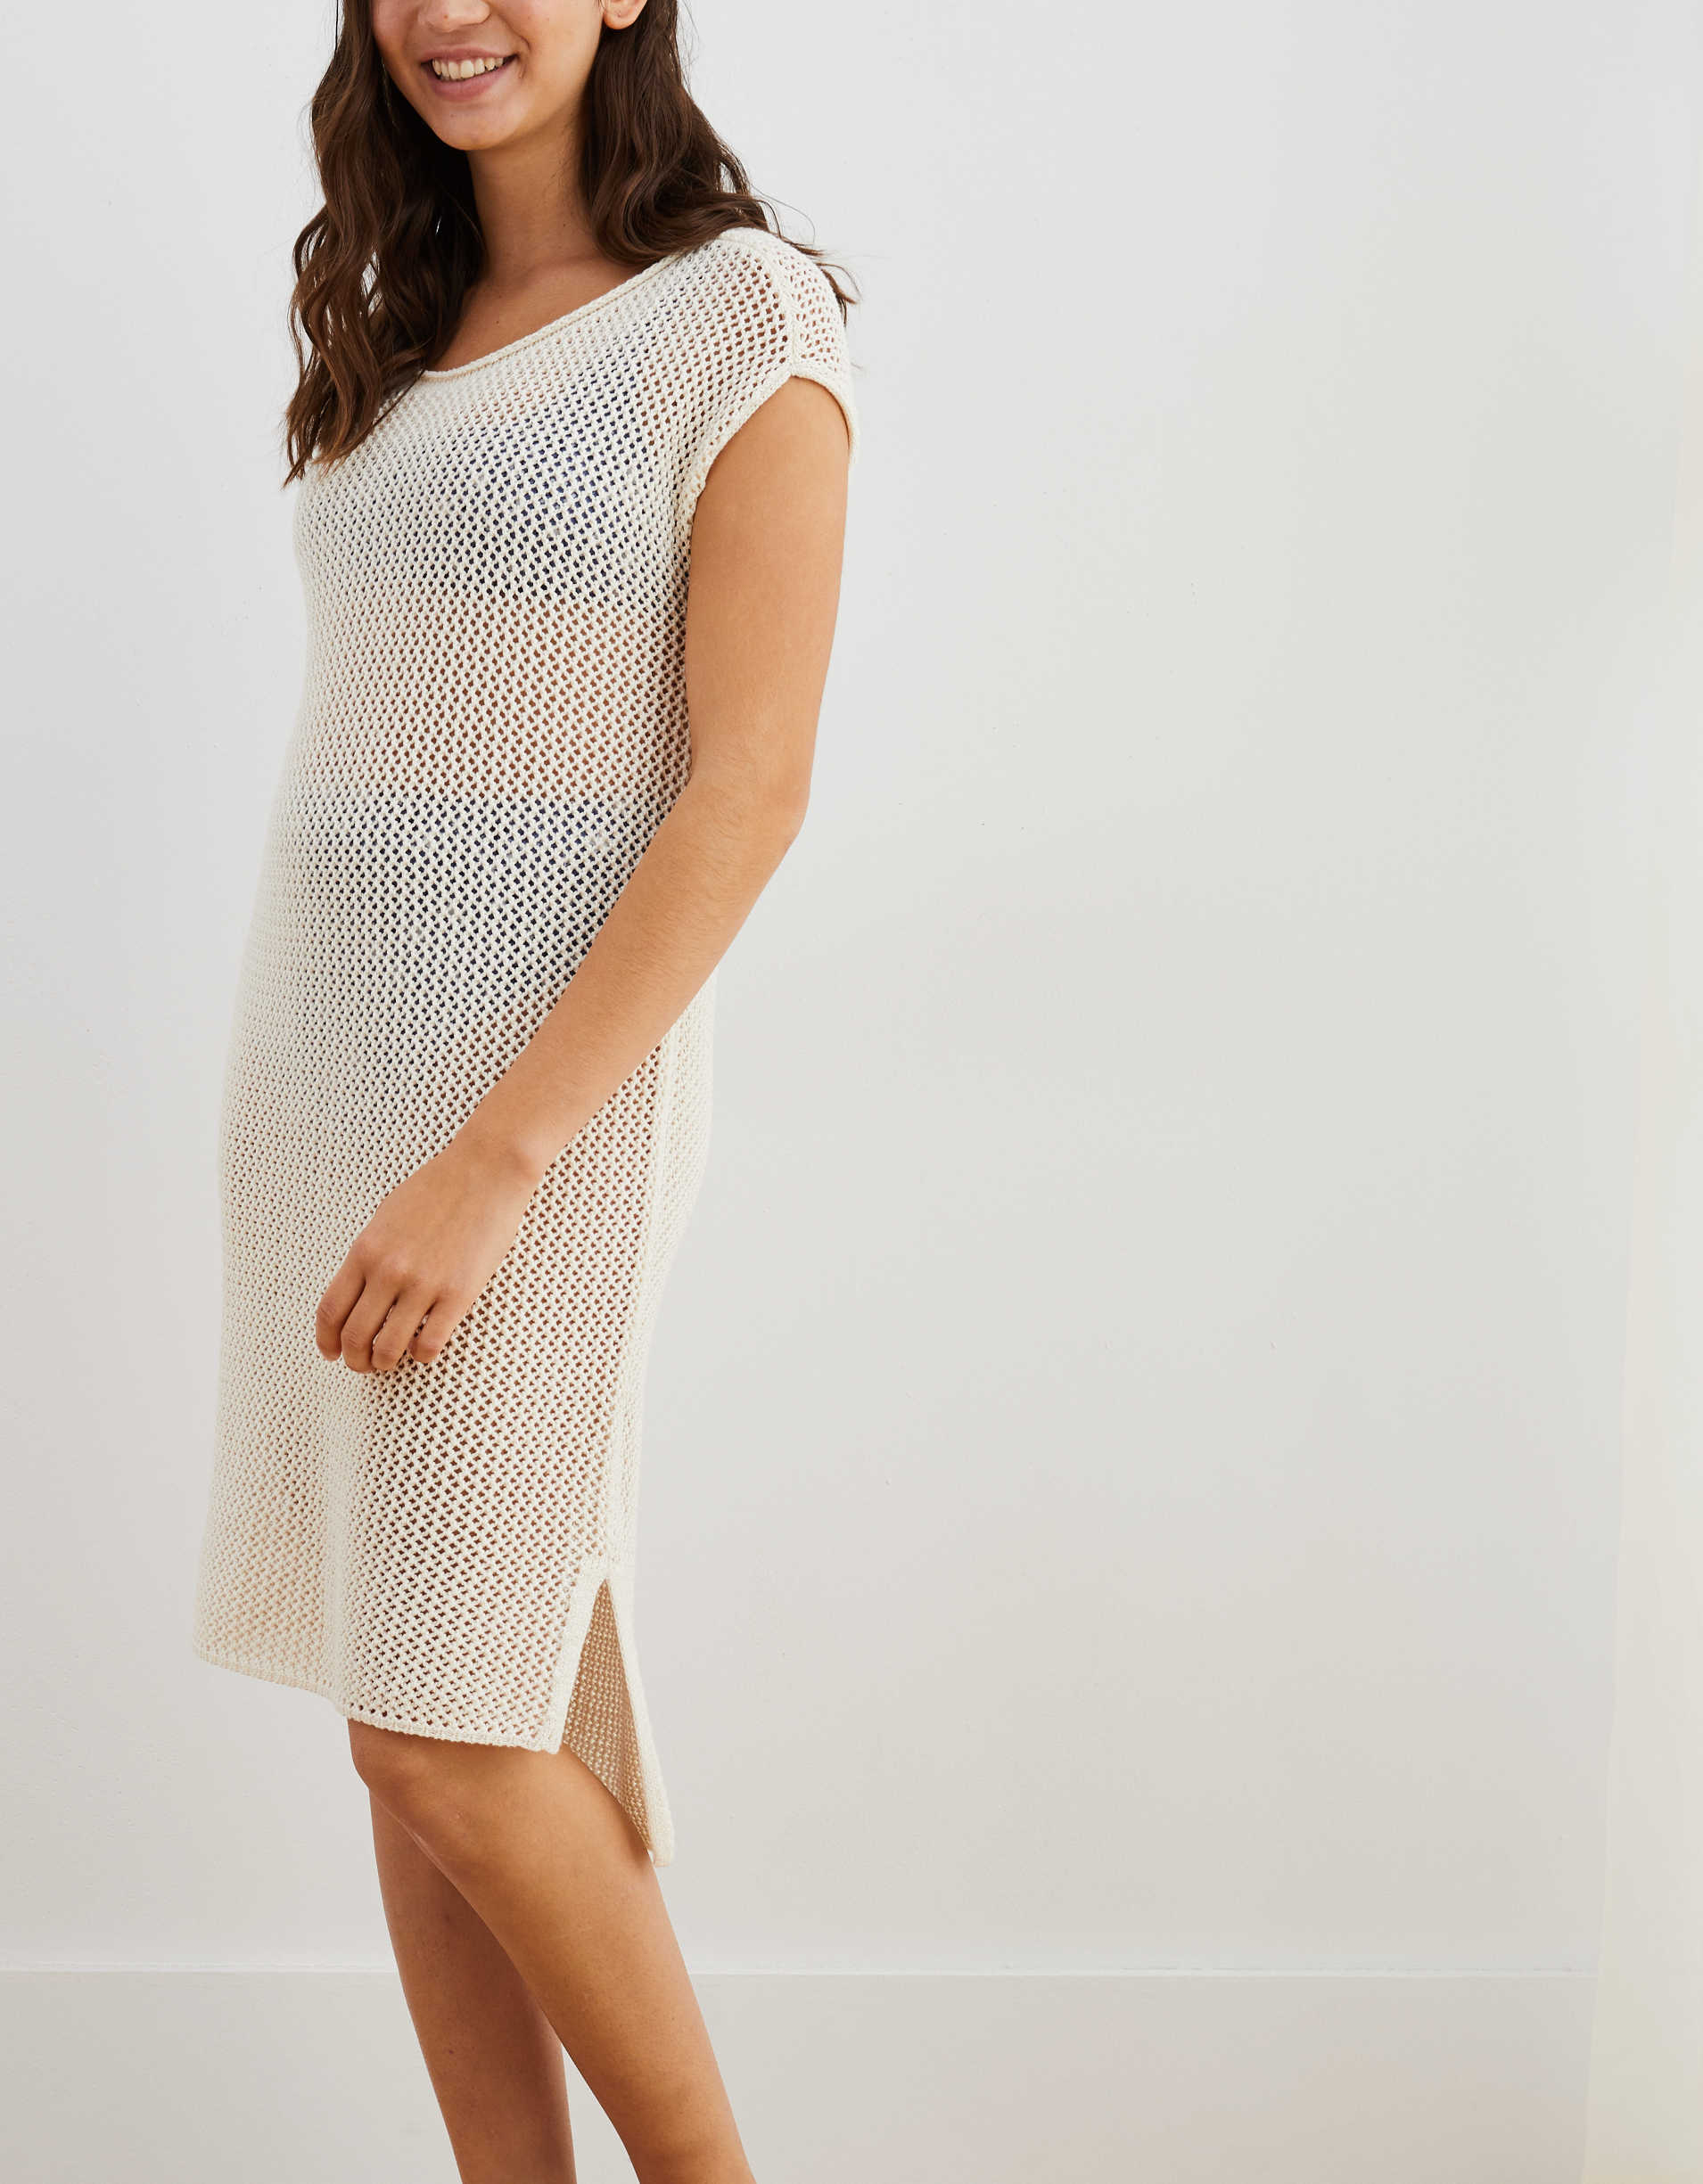 Aerie Mesh T-Shirt Cover Up